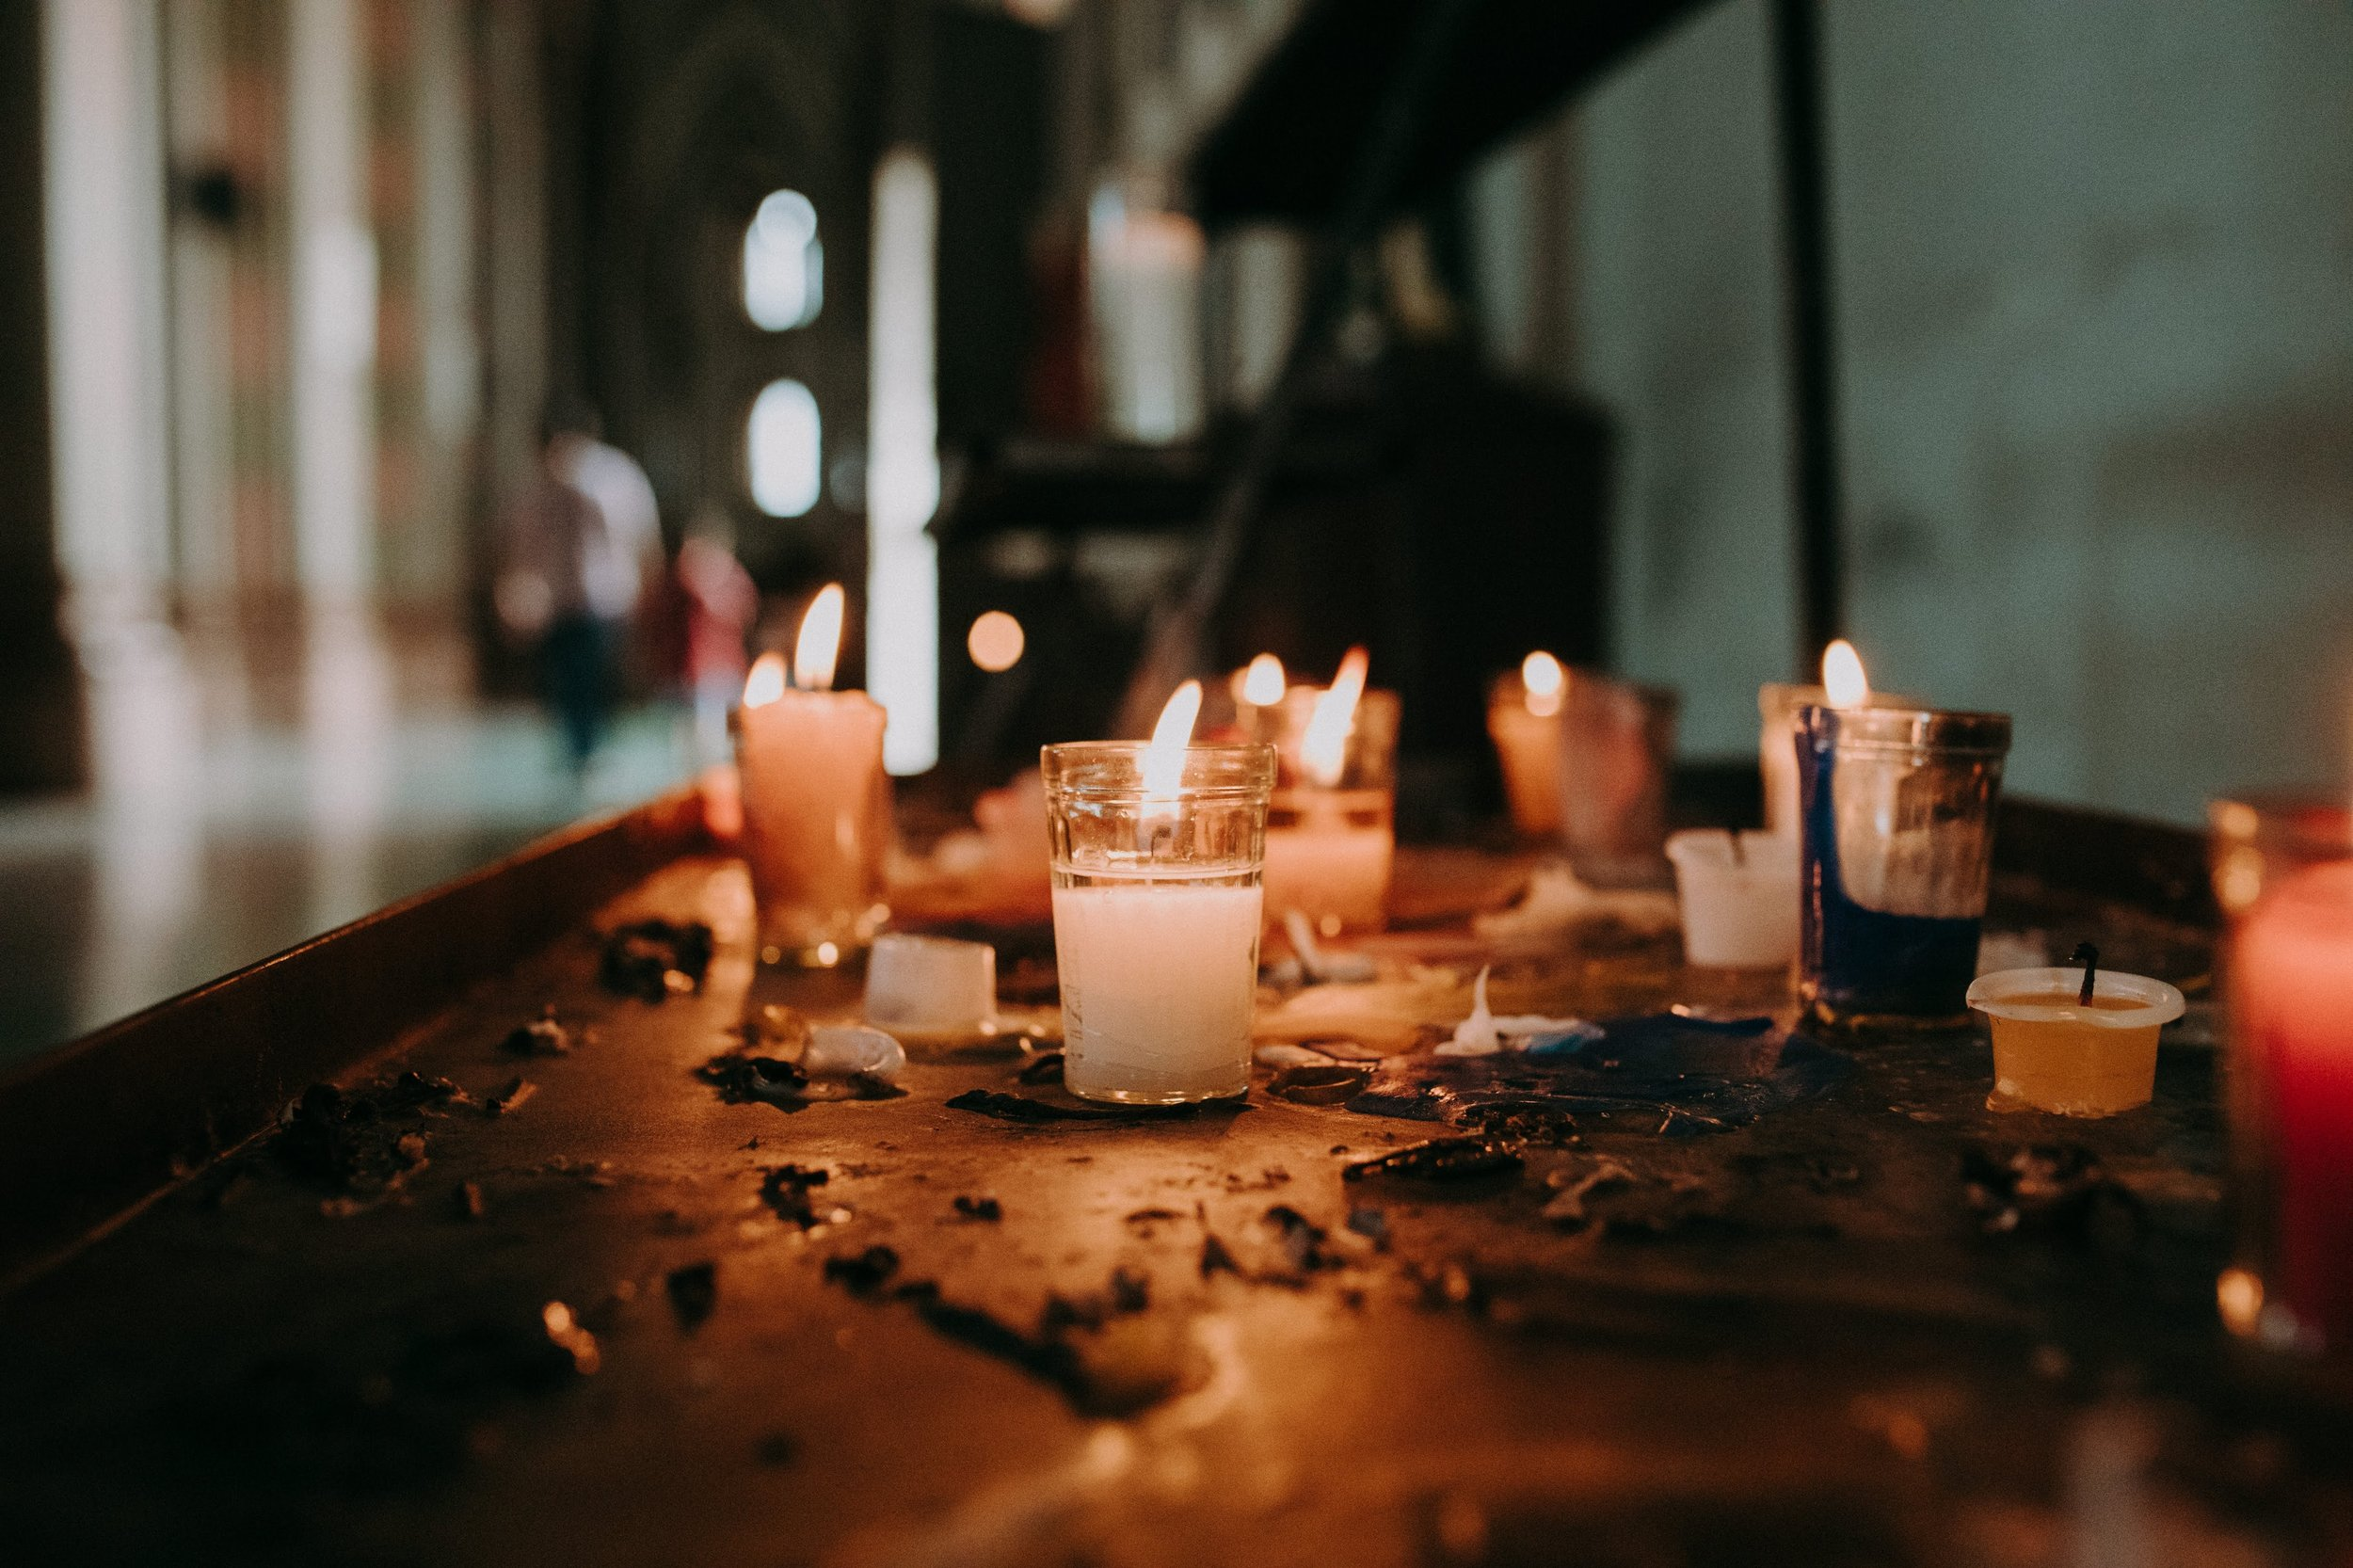 A collection of small candles flickering on a table.